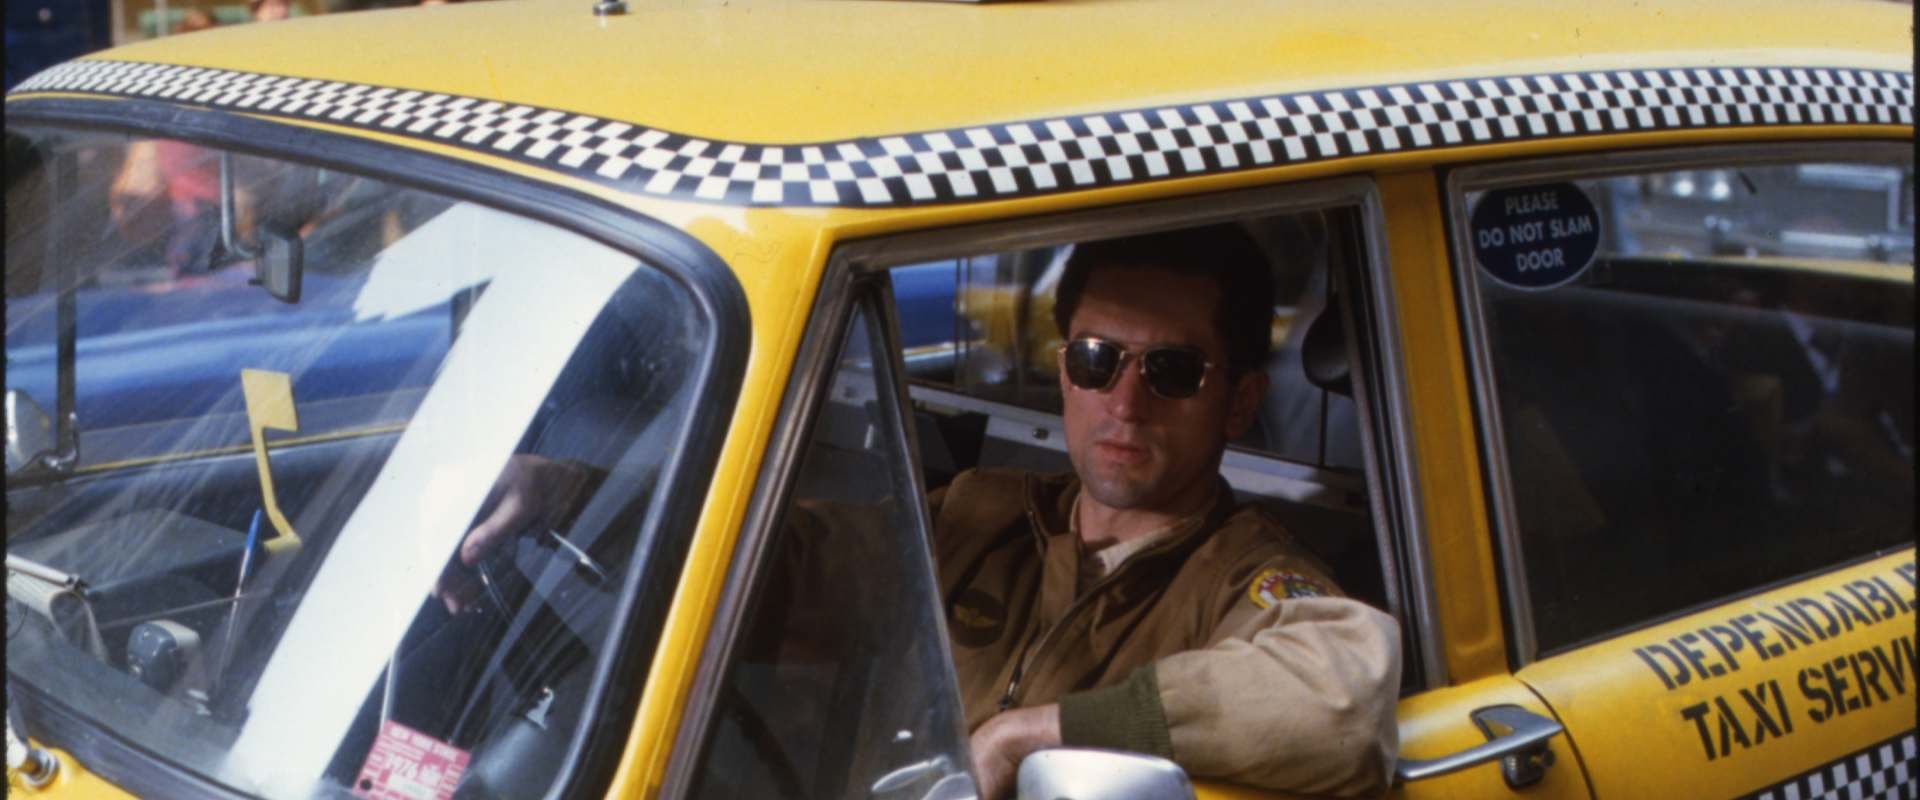 Taxi Driver background 2